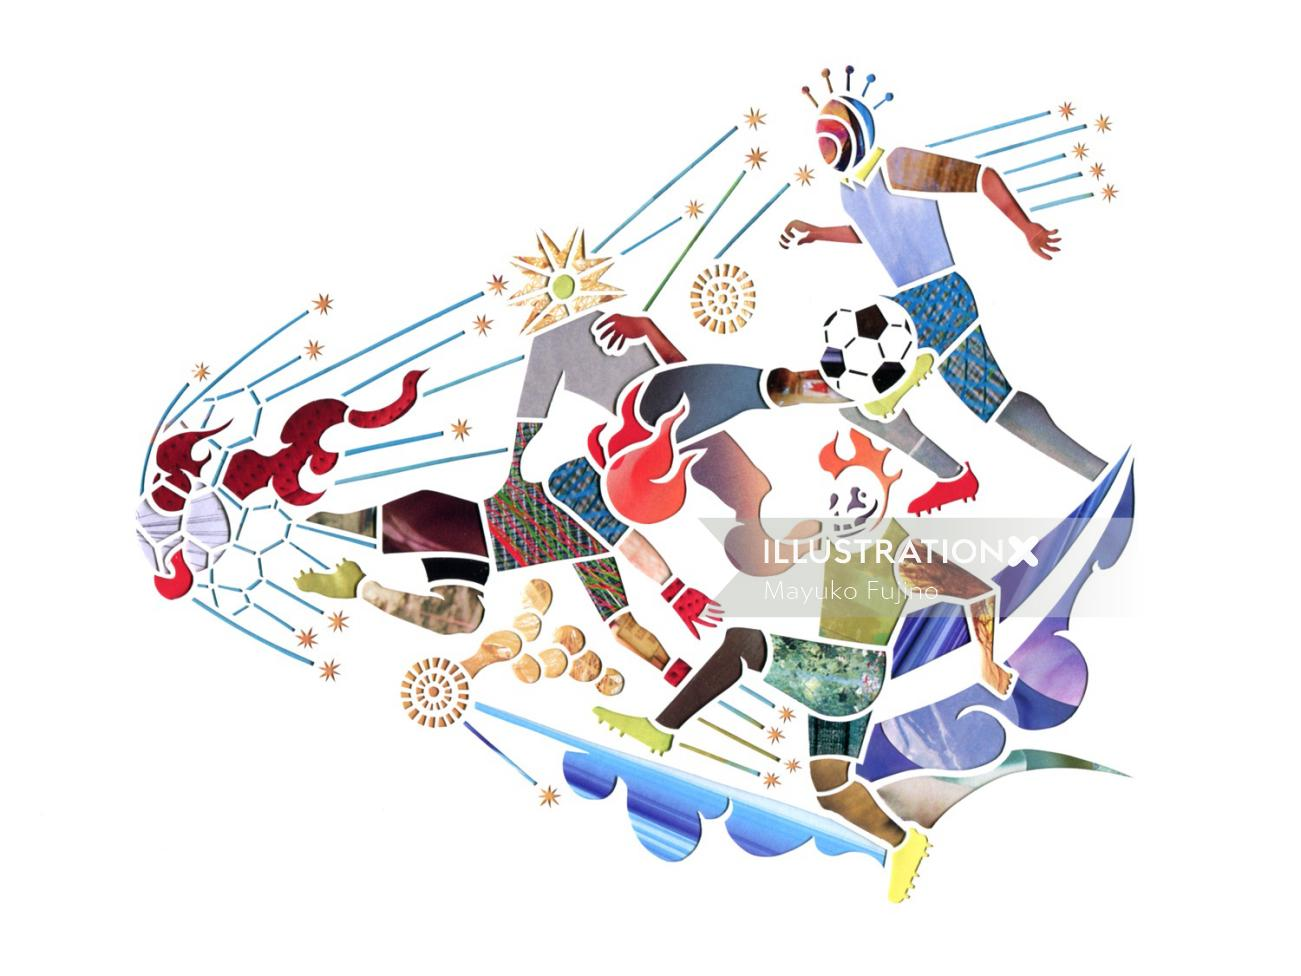 An illustration of soccer players